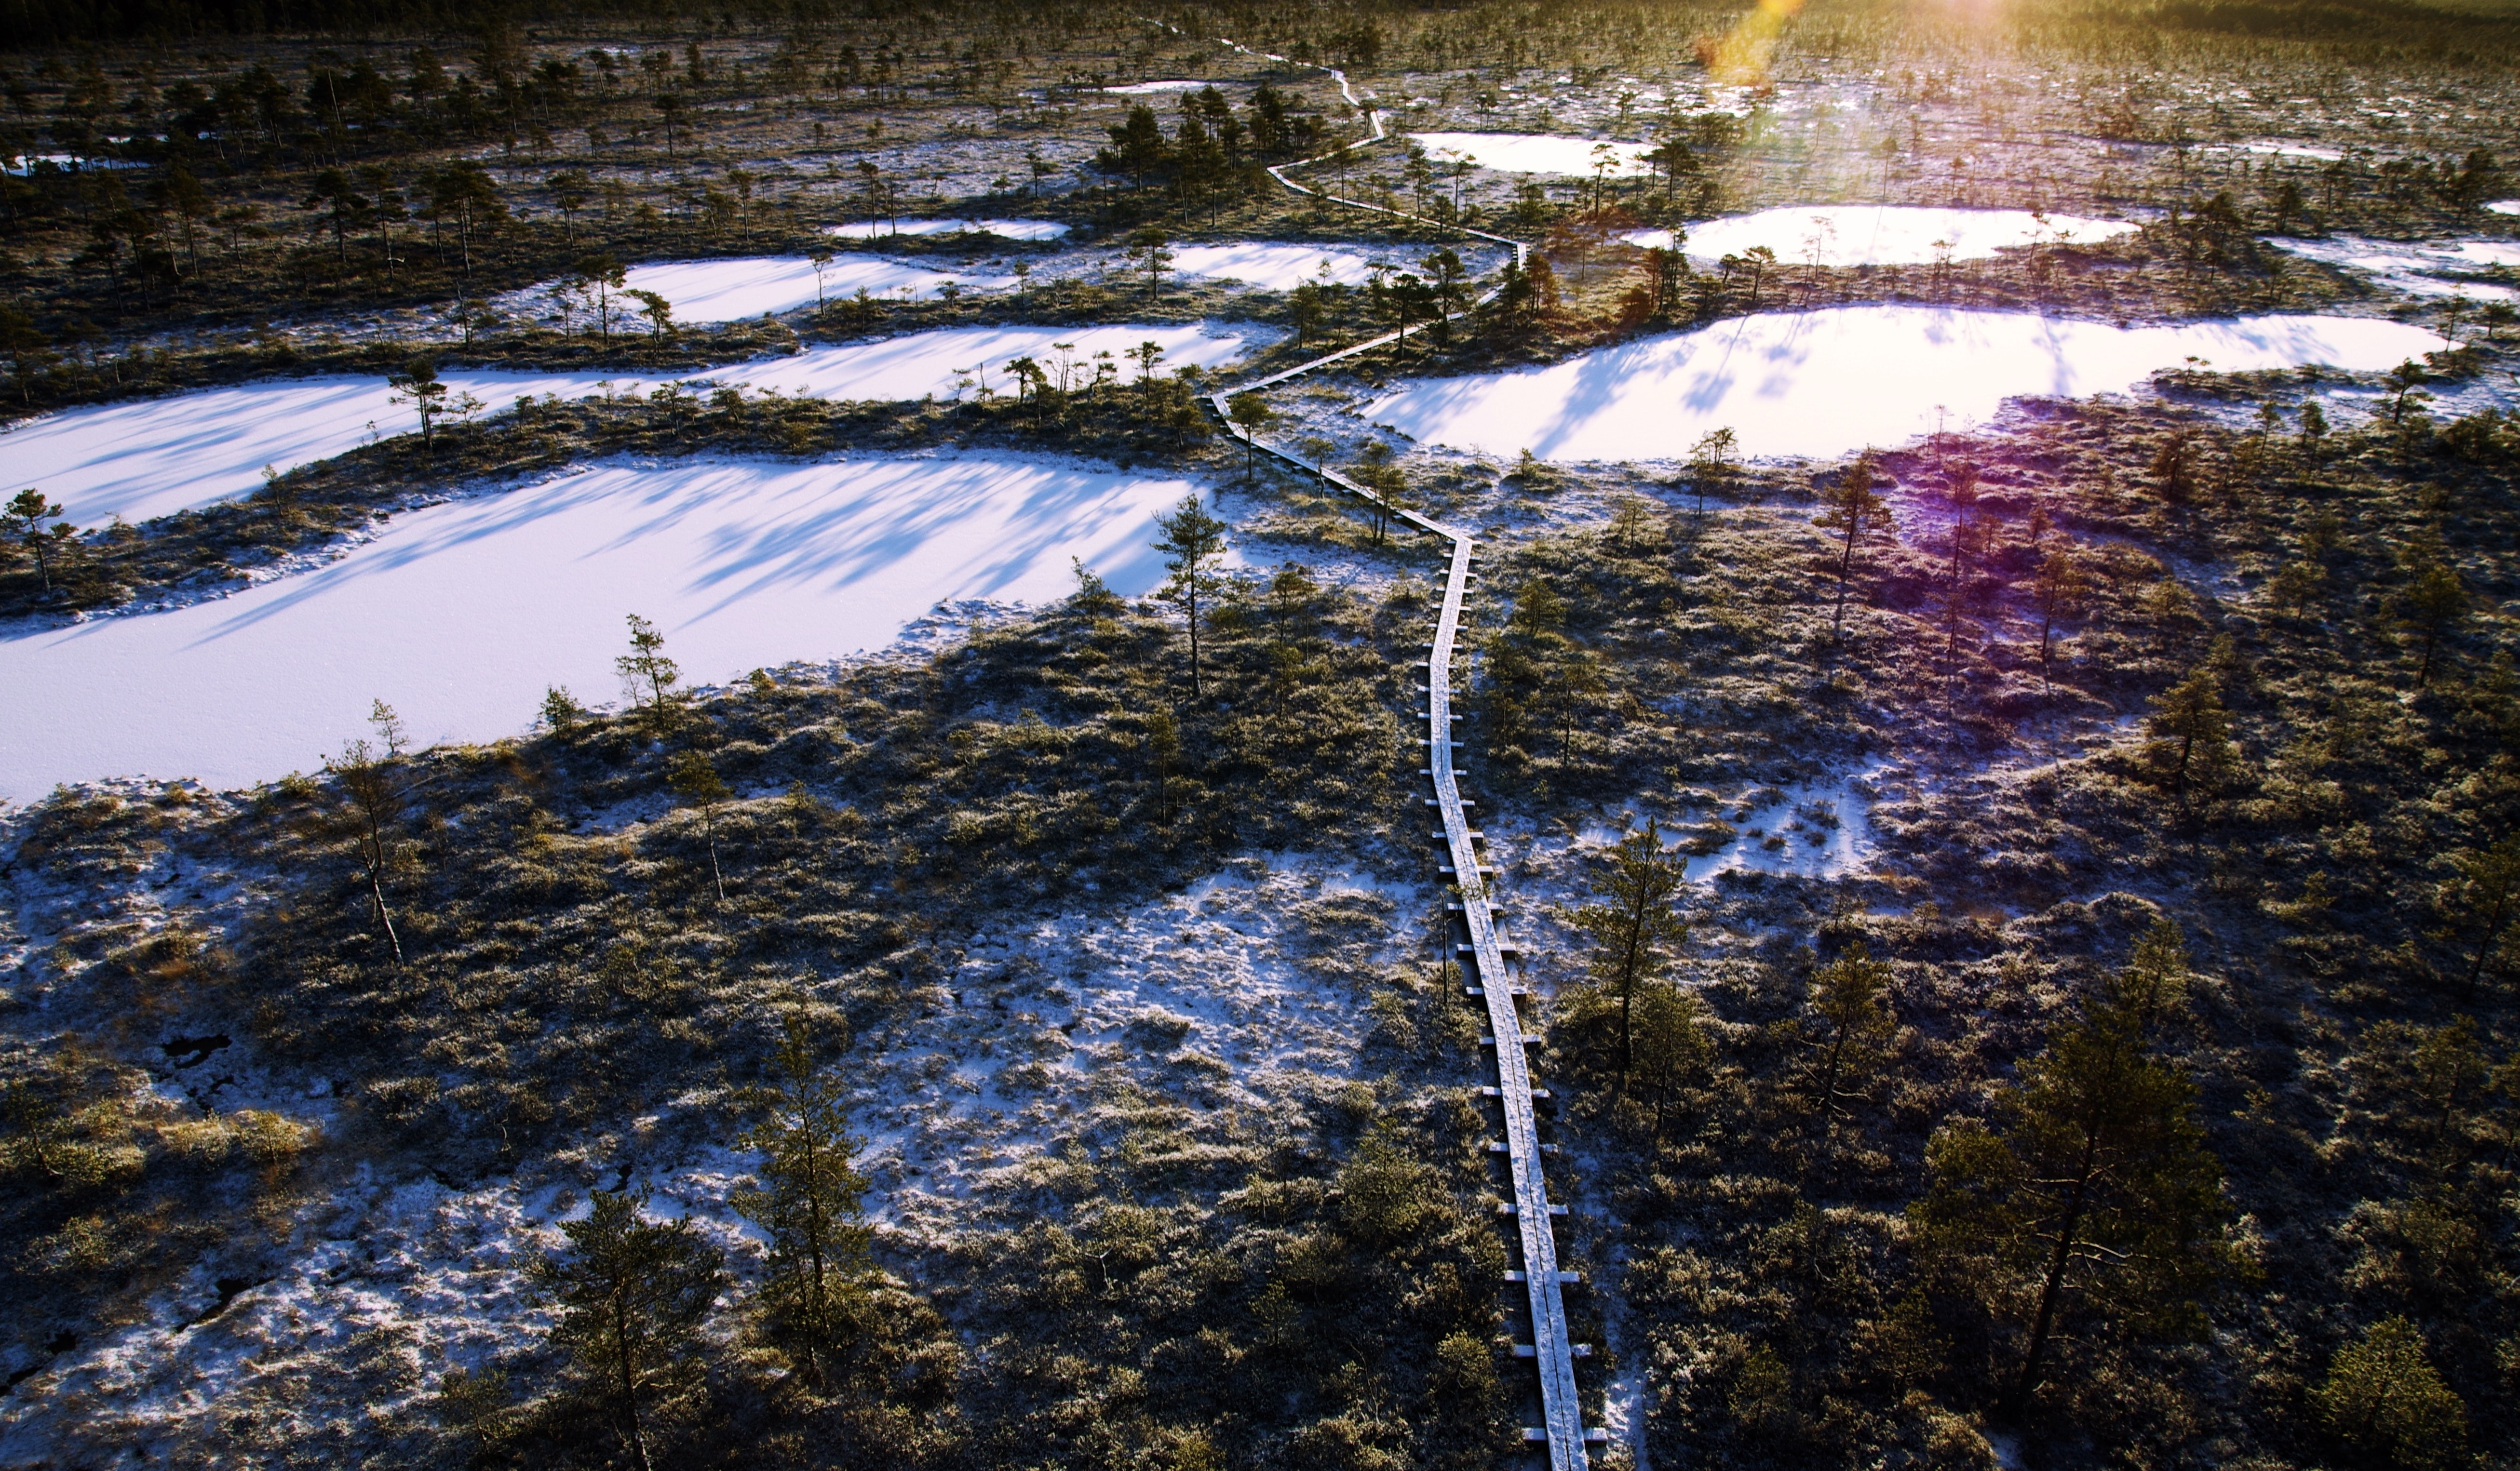 Aerial Photo of Frozen Lakes Surrounded by Trees, Aerial view, Shadow, Winter, Water, HQ Photo